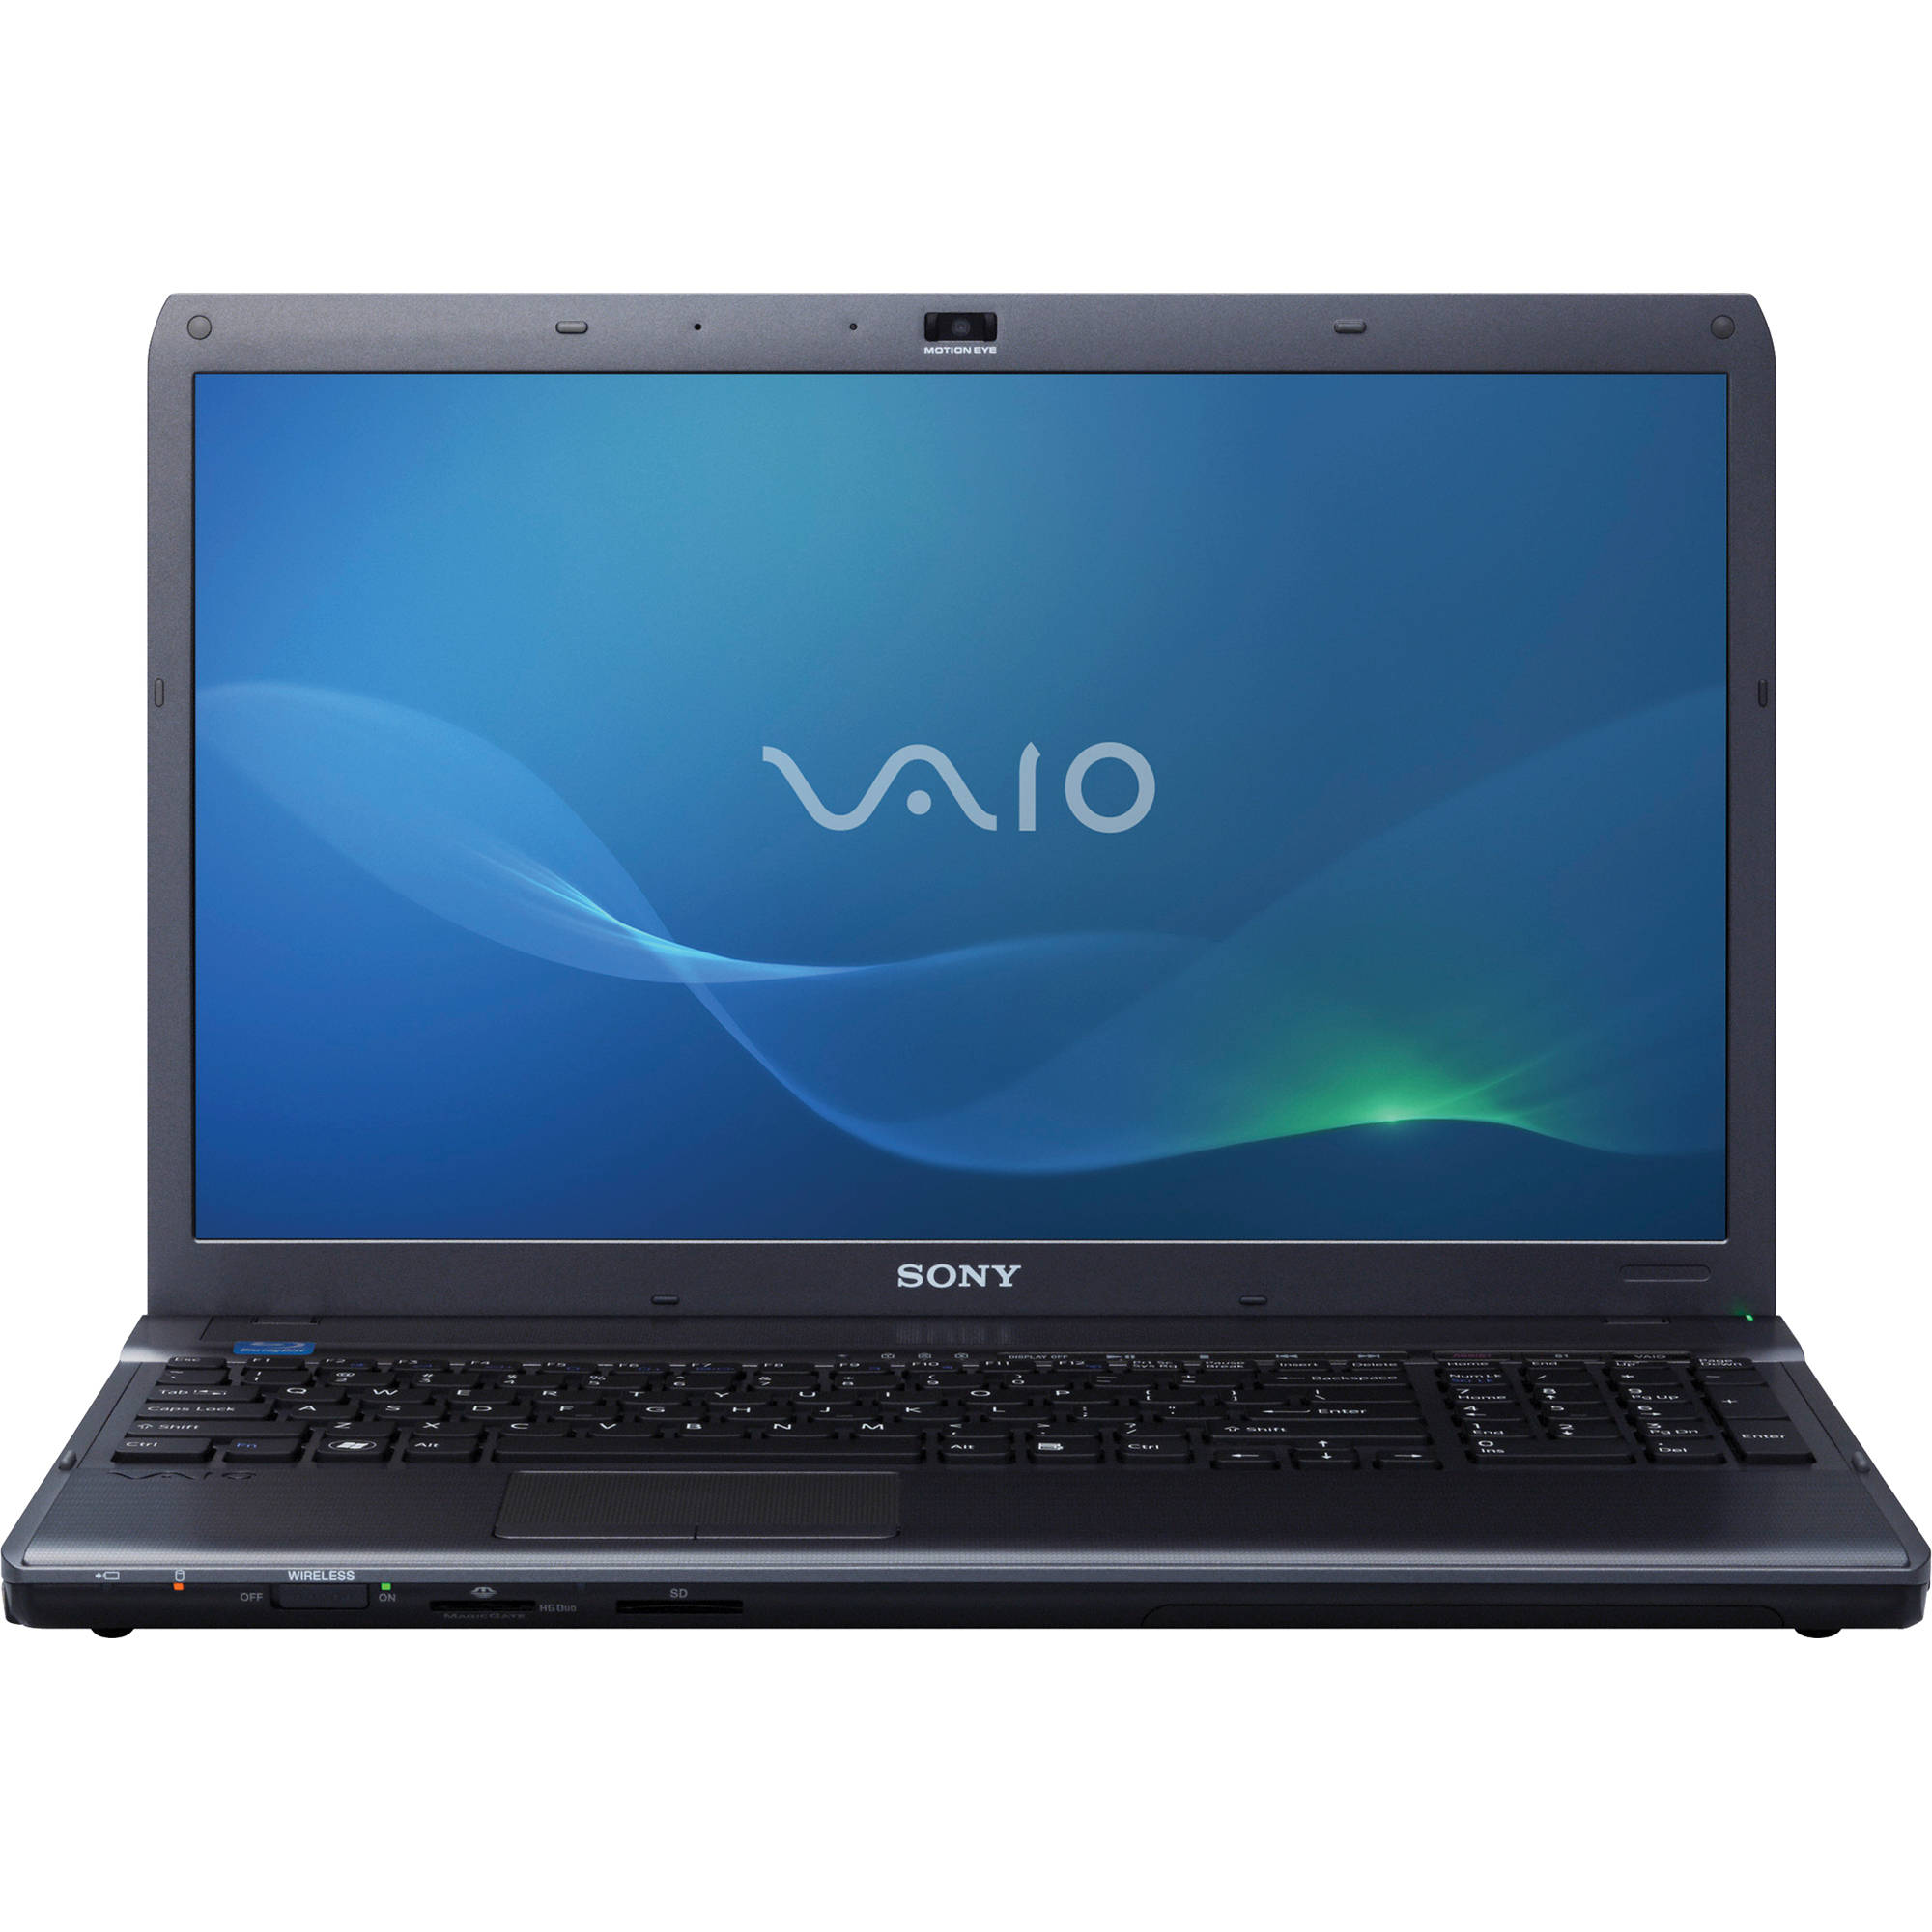 SONY VAIO VPCF134FX SHARED LIBRARY WINDOWS 8 DRIVERS DOWNLOAD